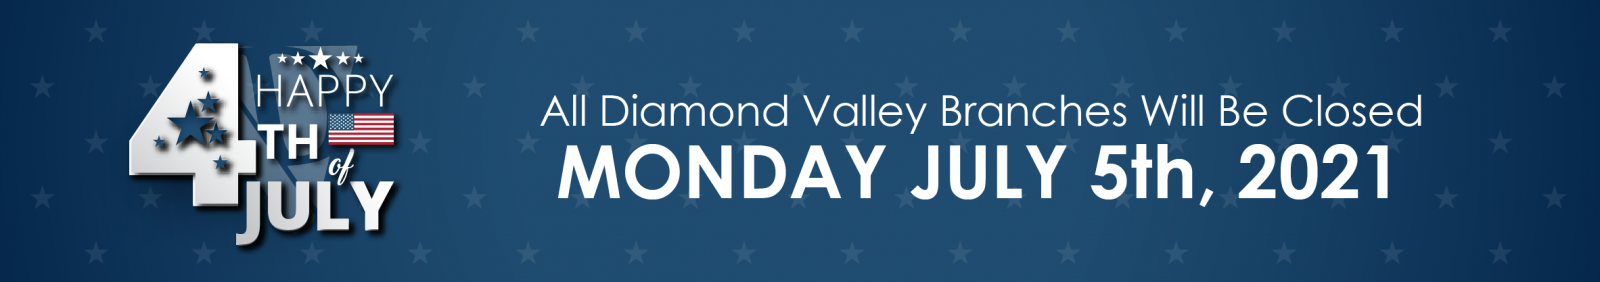 All Diamond Valley Branches will be closed July 5, 2021 in observance of Independence Day.